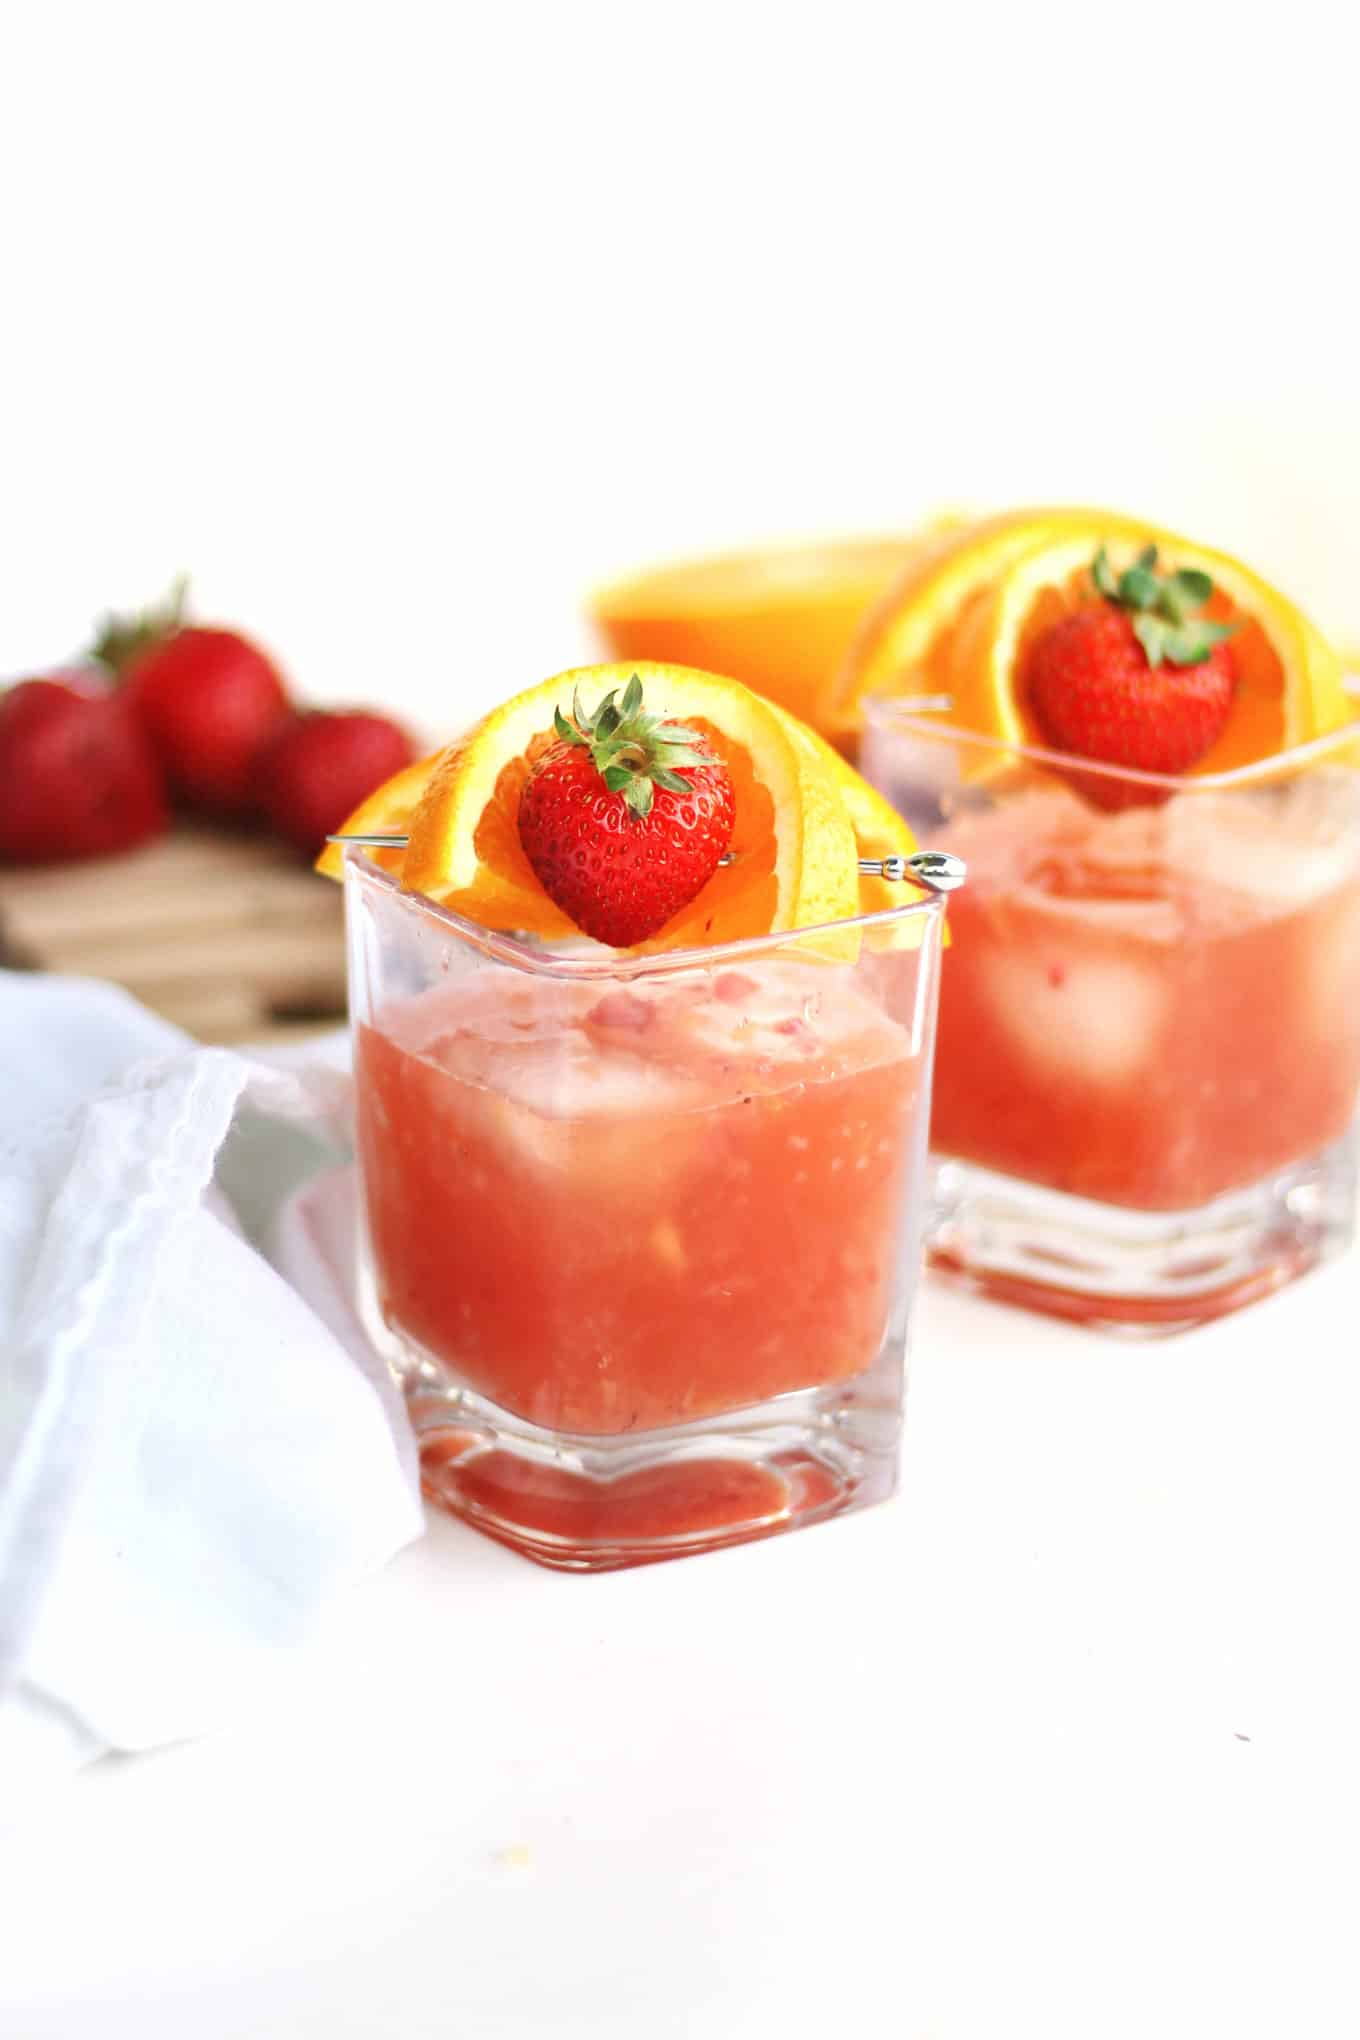 Strawberry orange summer bourbon cocktail recipe! A light and refreshing cocktail made with bourbon, rye, or whiskey that is perfect for spring or summer nights. // Rhubarbarians